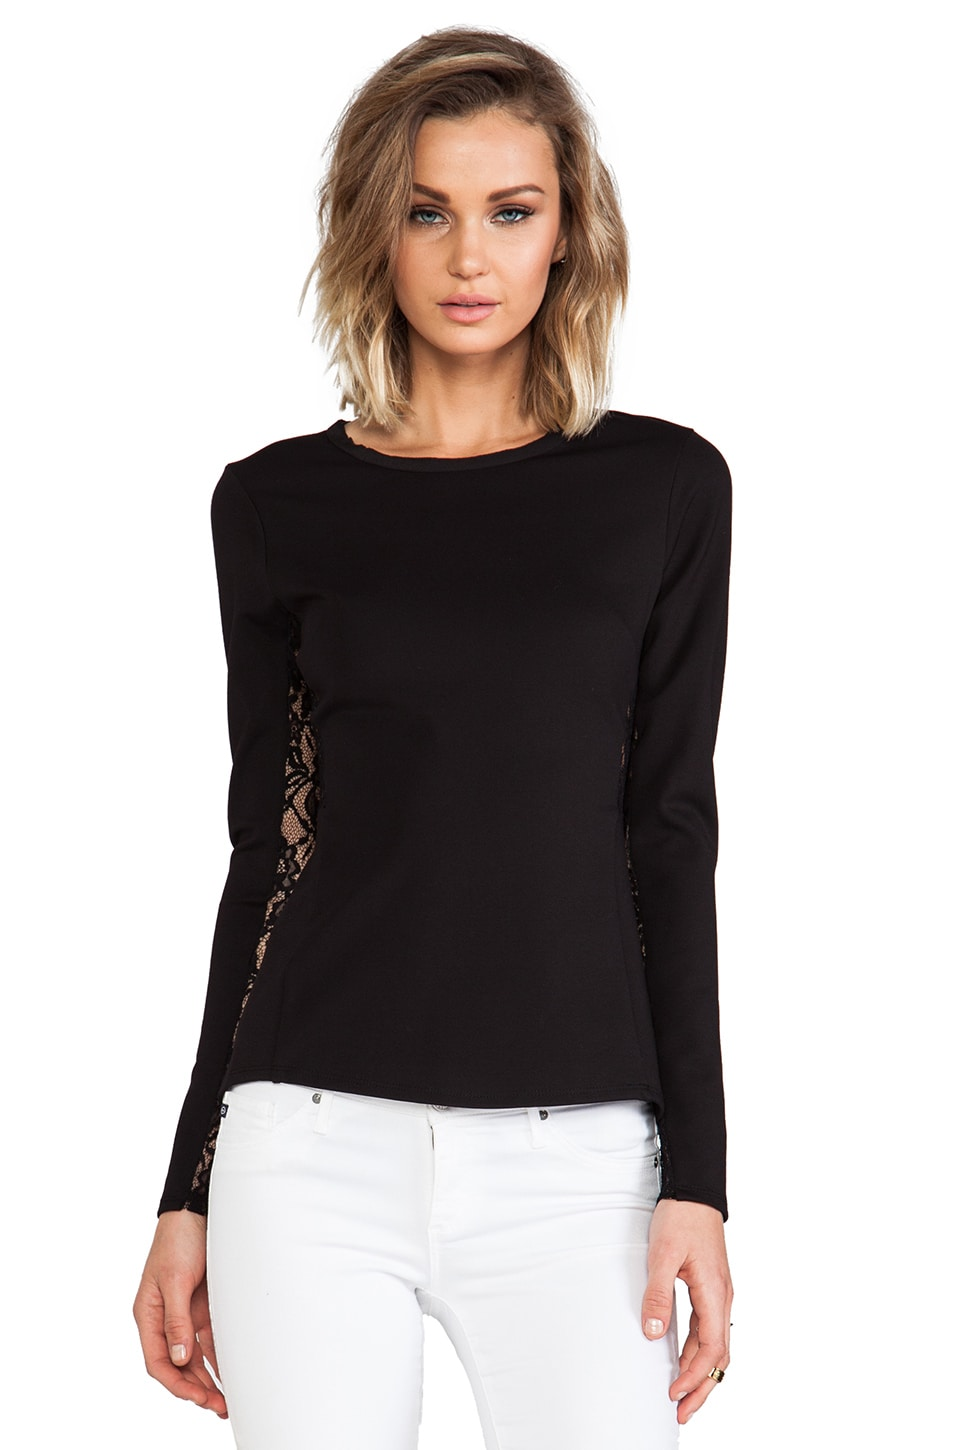 Rebecca Taylor Long Sleeve Peplum Top in Black